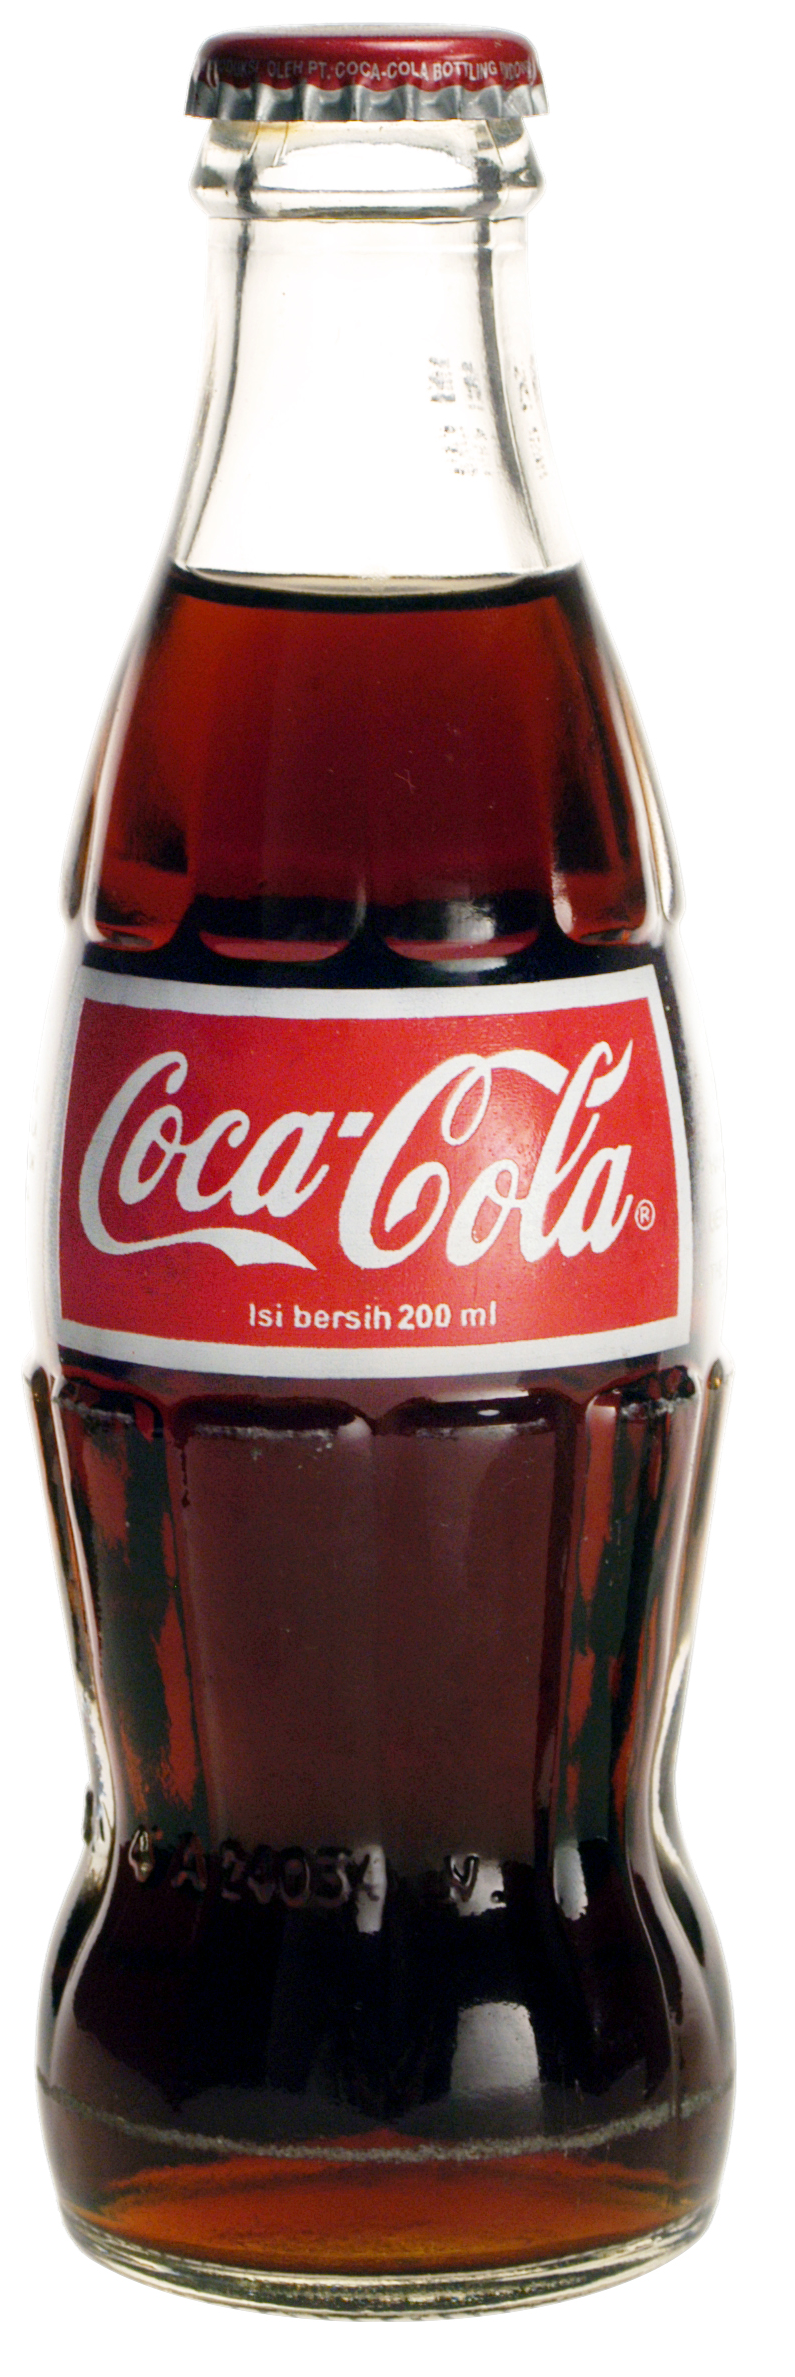 CocaColaBottle Background Free Png image #41675